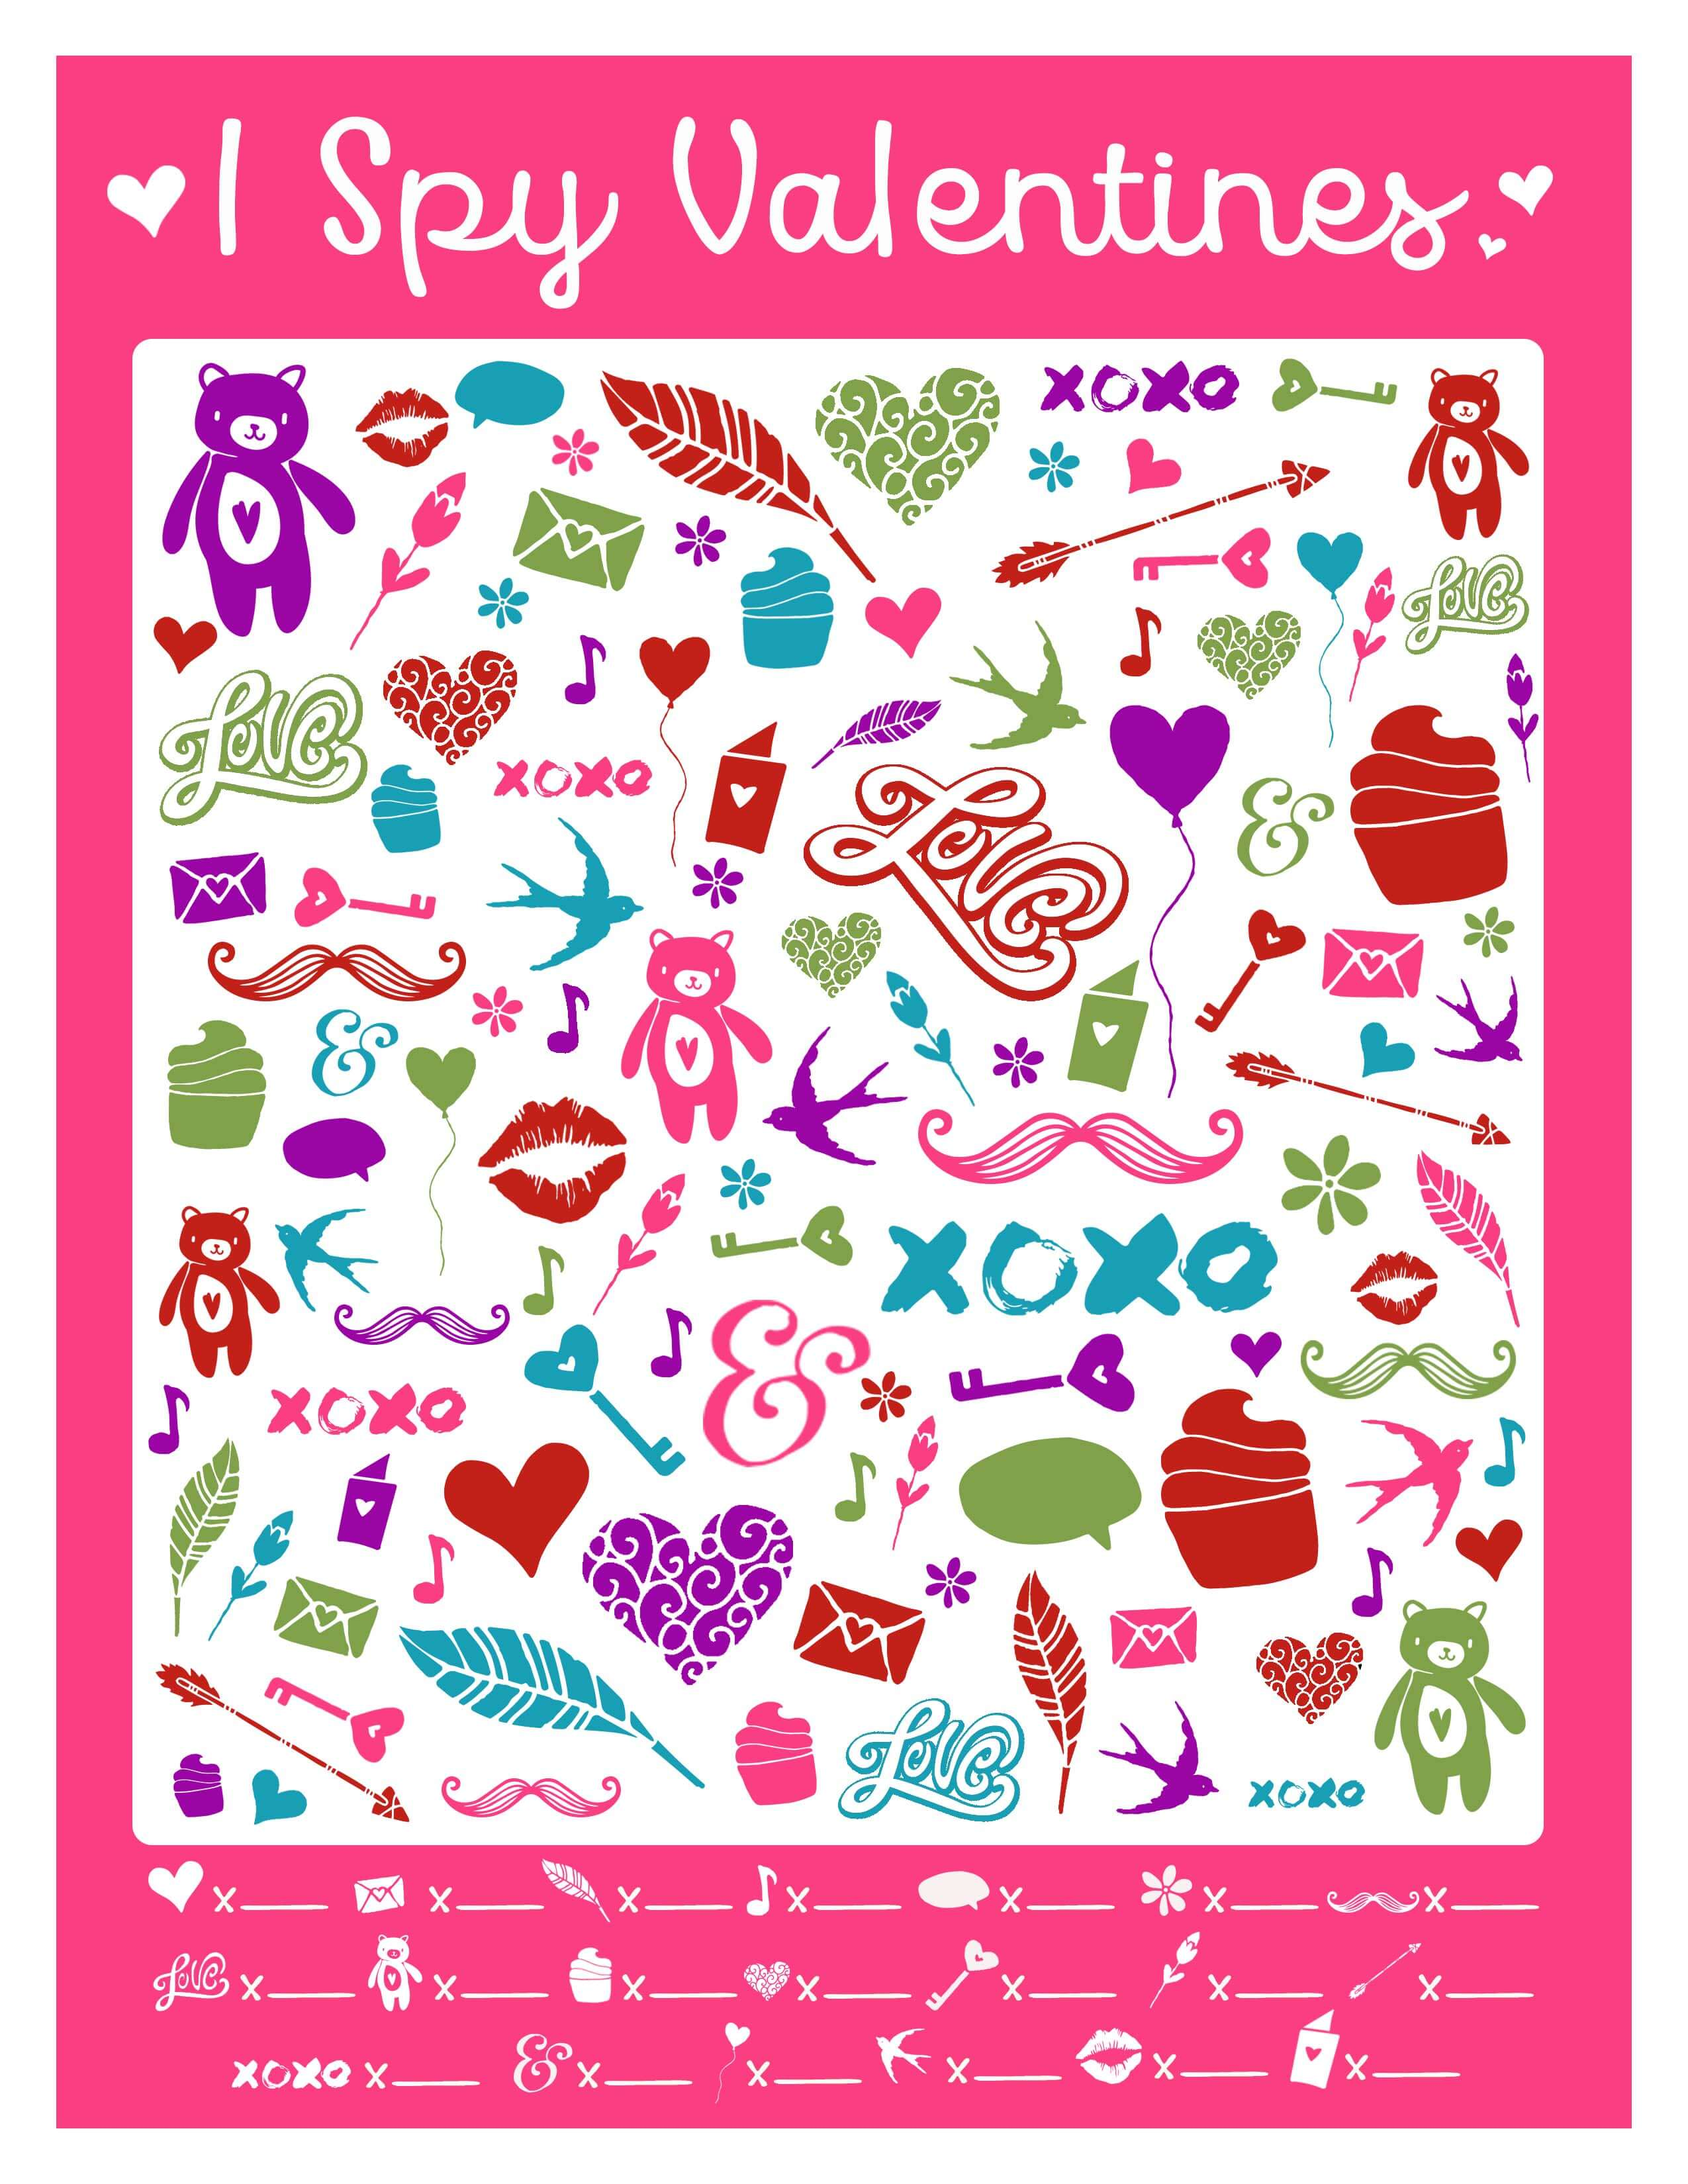 This free I Spy Valentines printable game is perfect for parties, play-dates, and quiet afternoons at home! Click here to get it or go to www.TeepeeGirl.com!